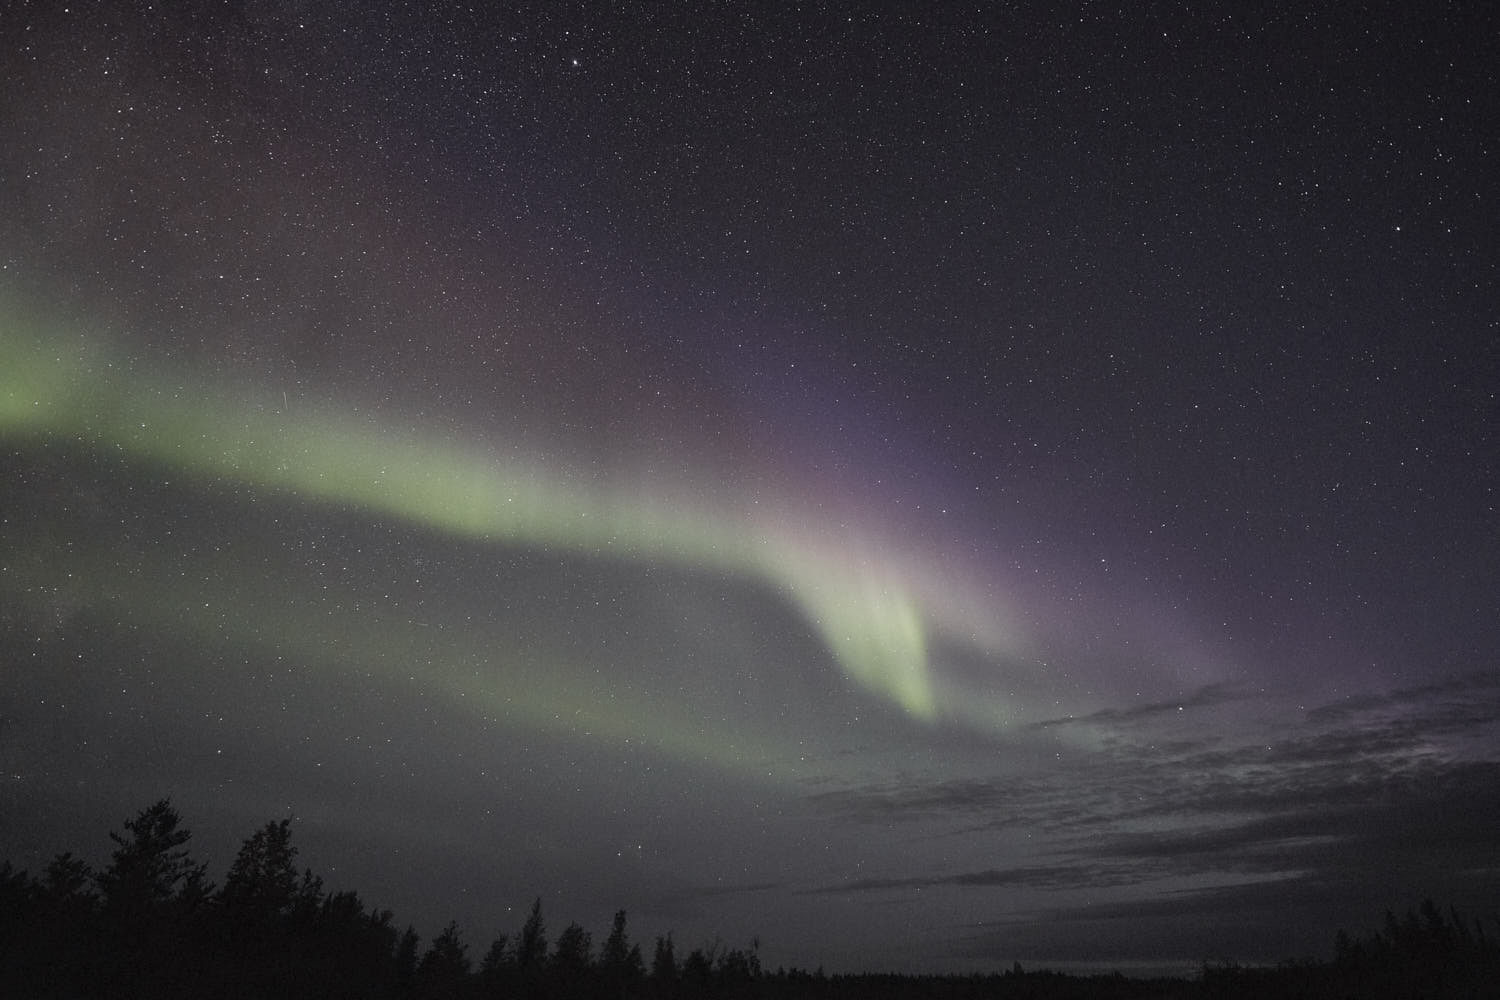 This is, not perfect, but that same photograph edited much closer to how I remember actually viewing the aurora in real time with my naked eyes in that moment.  Very  faint greens were visible, and the reds and purples were much more just a different 'hue' than a distinctly identifiable colour.